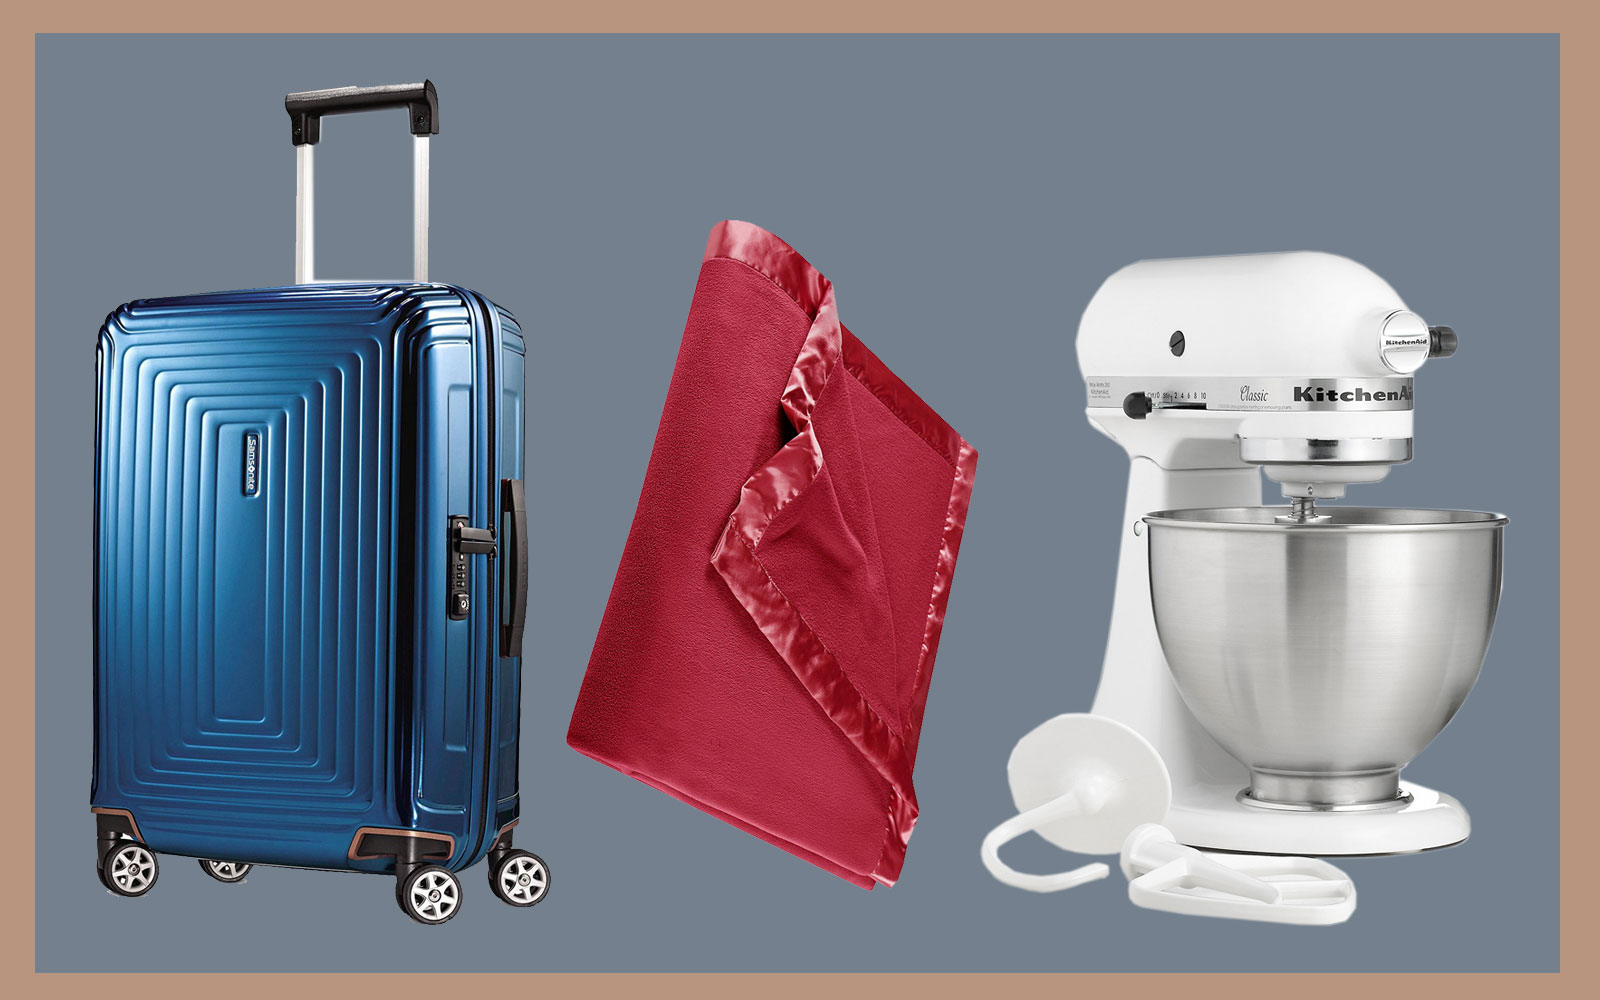 kitchenaid mixer, samsonite luggage, martha stewart blanket